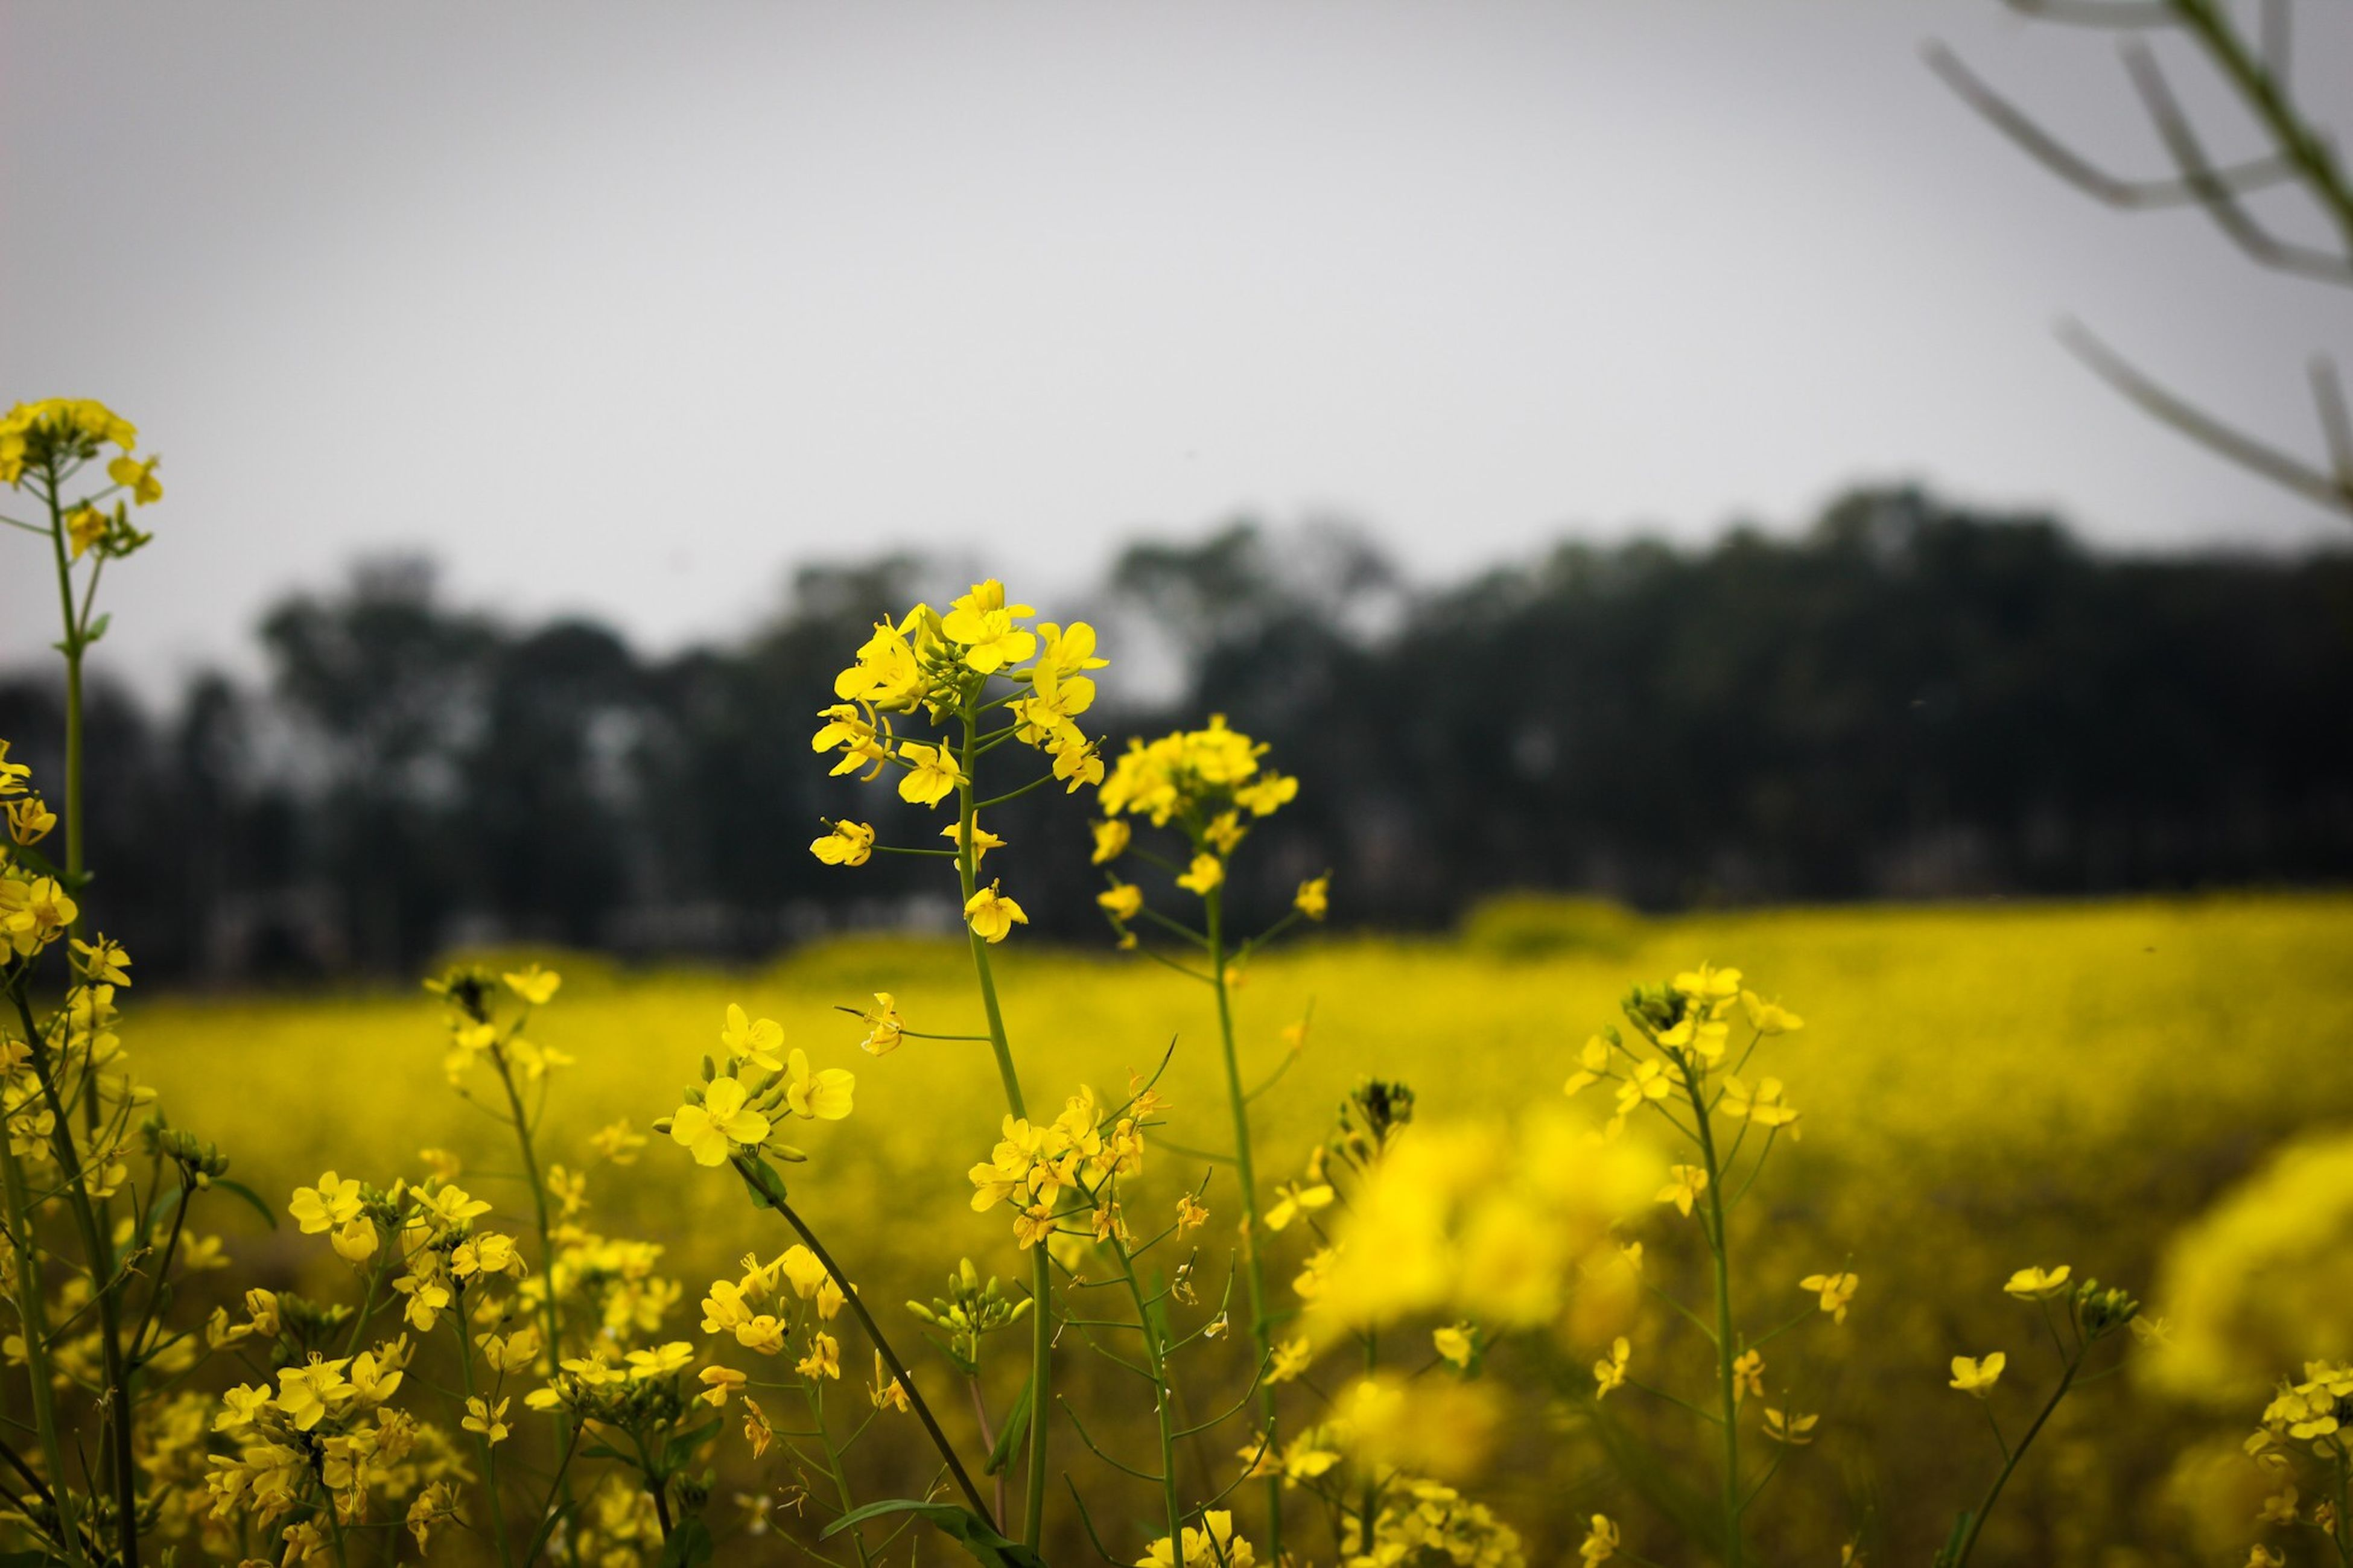 flower, yellow, freshness, fragility, growth, beauty in nature, field, nature, petal, flower head, focus on foreground, blooming, plant, stem, in bloom, close-up, blossom, selective focus, wildflower, clear sky